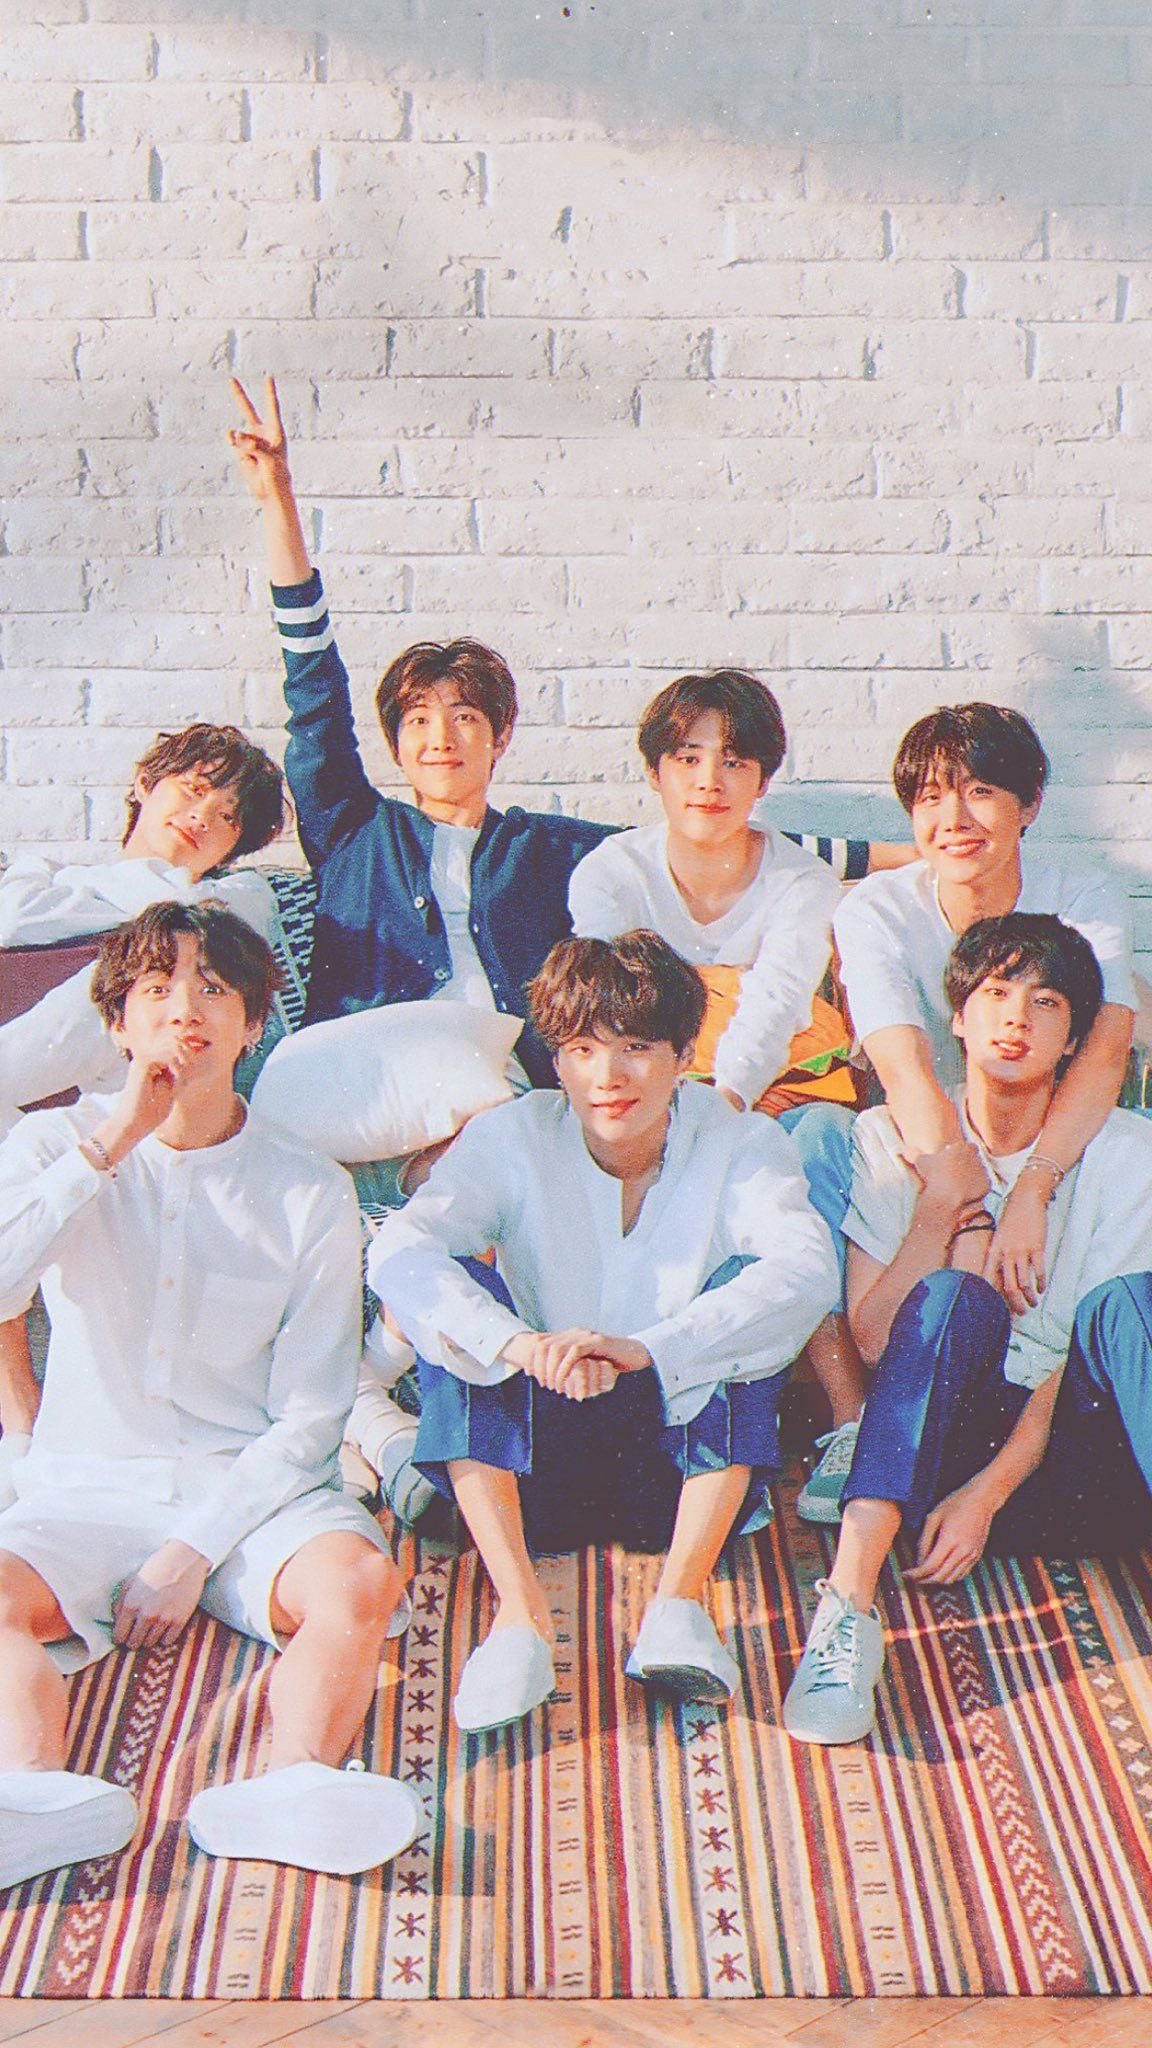 Bts Laptop Wallpaper Hd In 2020 Bts Laptop Wallpaper Bts Wallpaper Bts Lockscreen